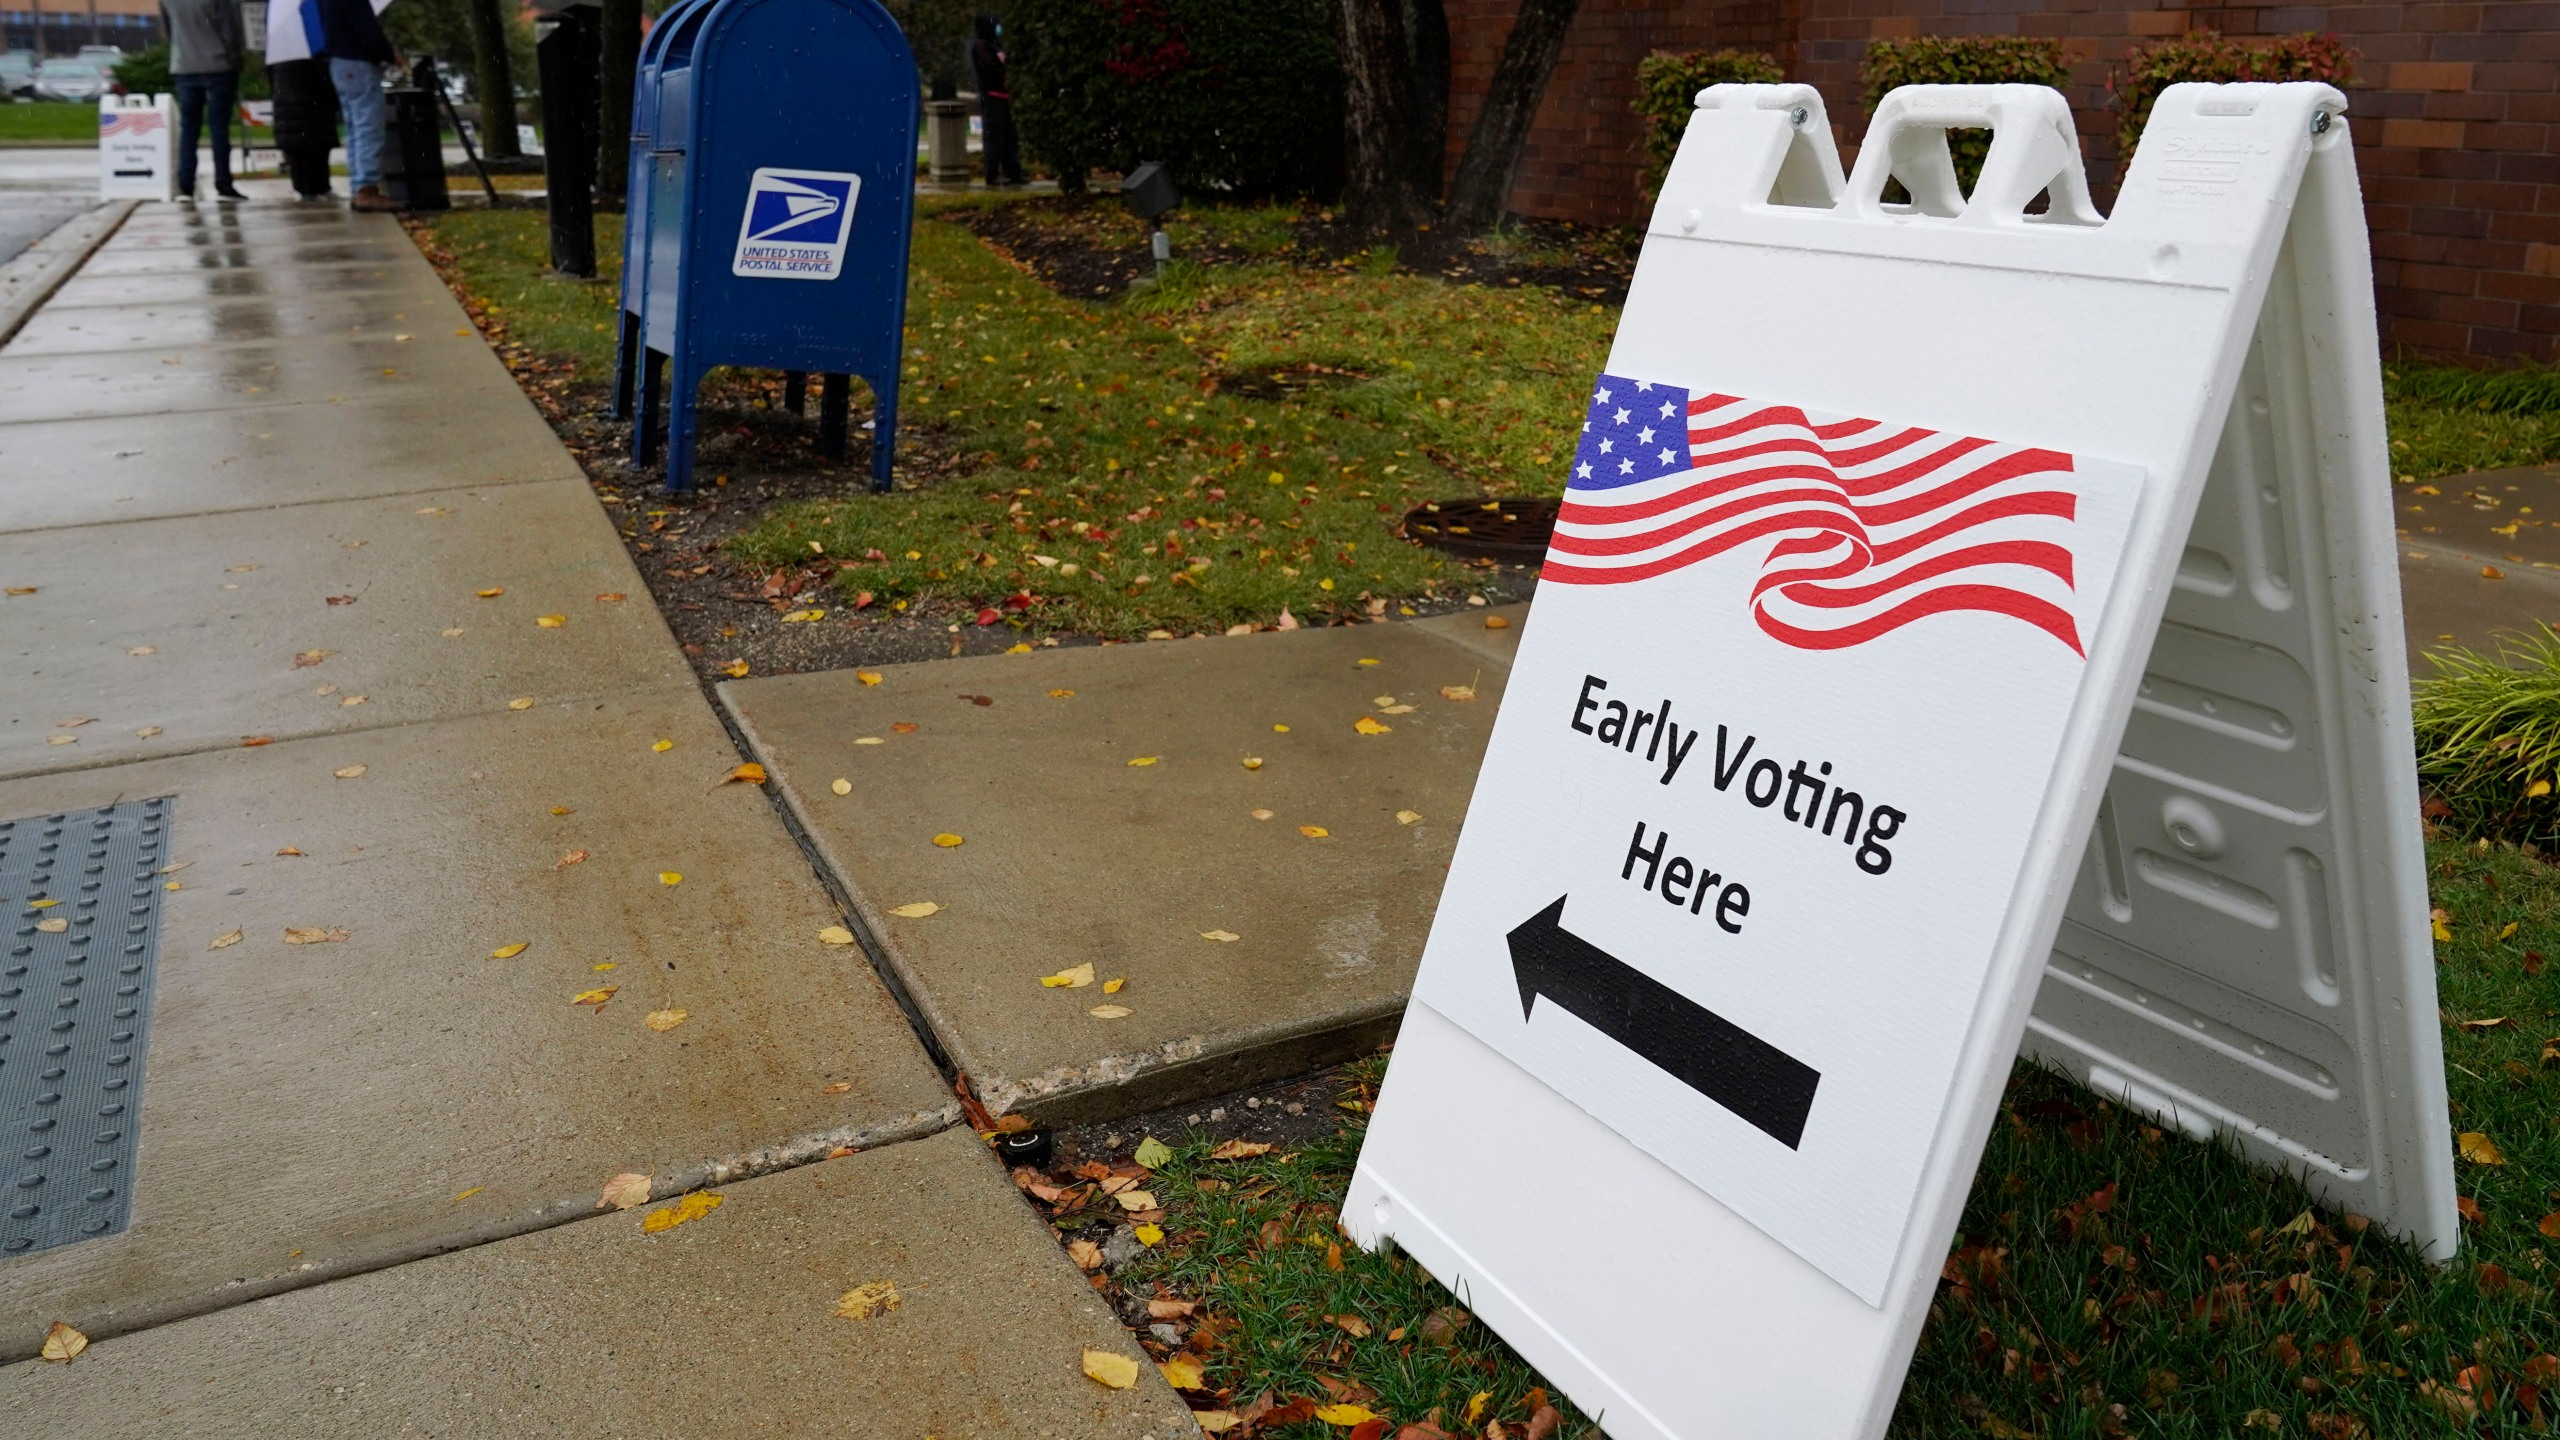 An information sign shows outside the Elk Grove Village Hall as voters wait in line during early voting at Elk Grove Village, Ill., Friday, Oct. 23, 2020. (AP Photo/Nam Y. Huh)